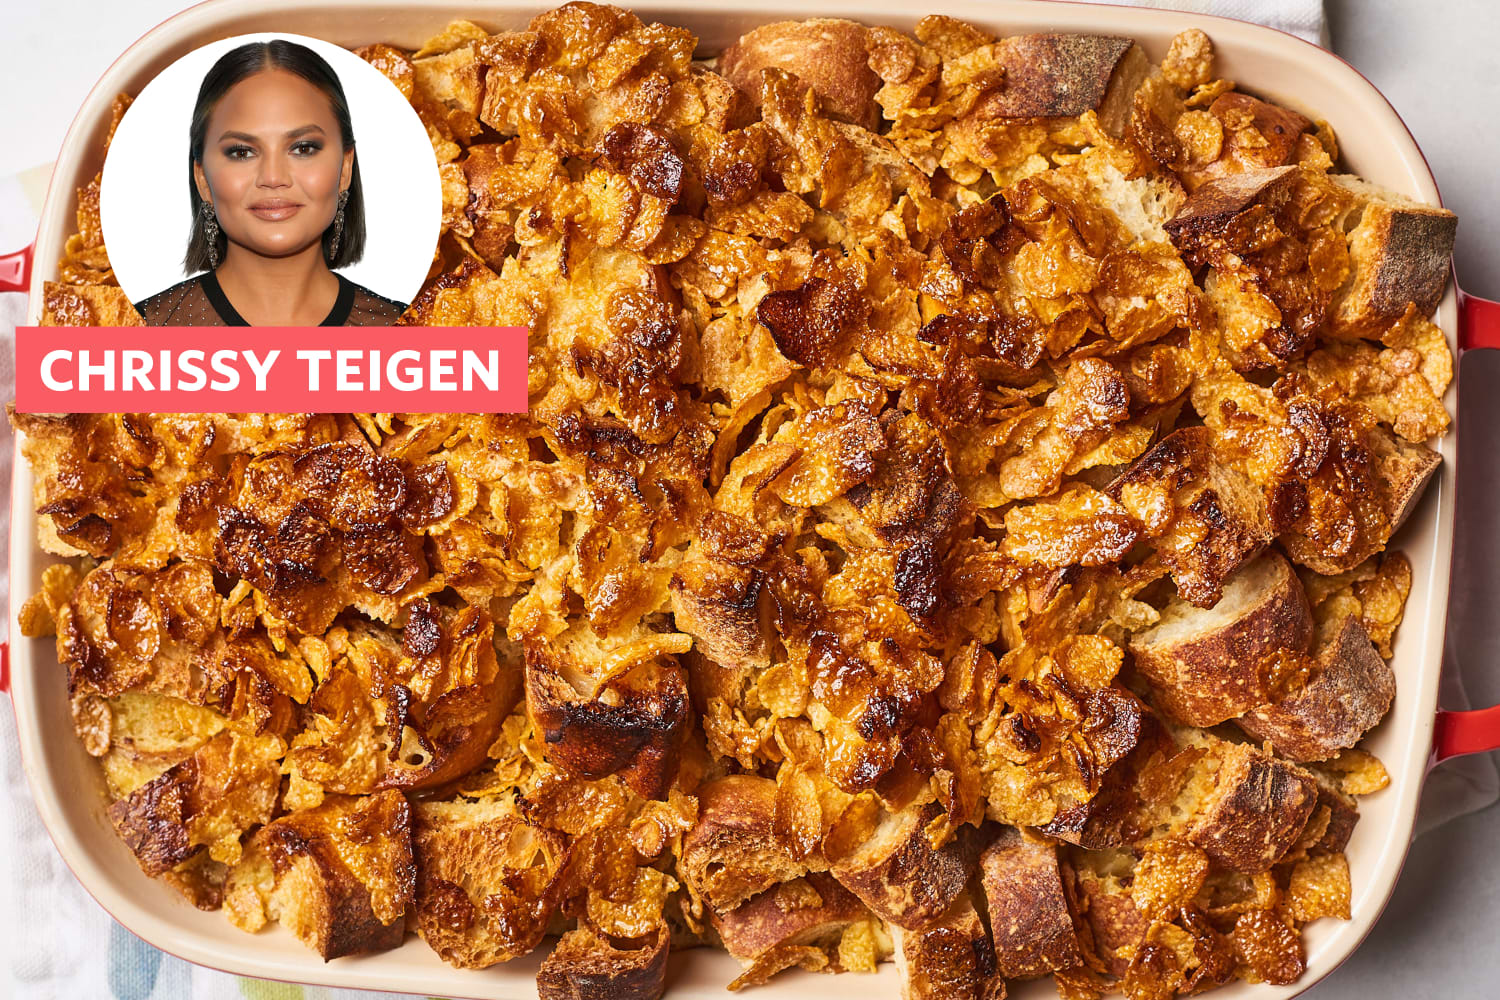 Chrissy Teigen's Twist on French Toast Will Make You Feel Like a Kid Again